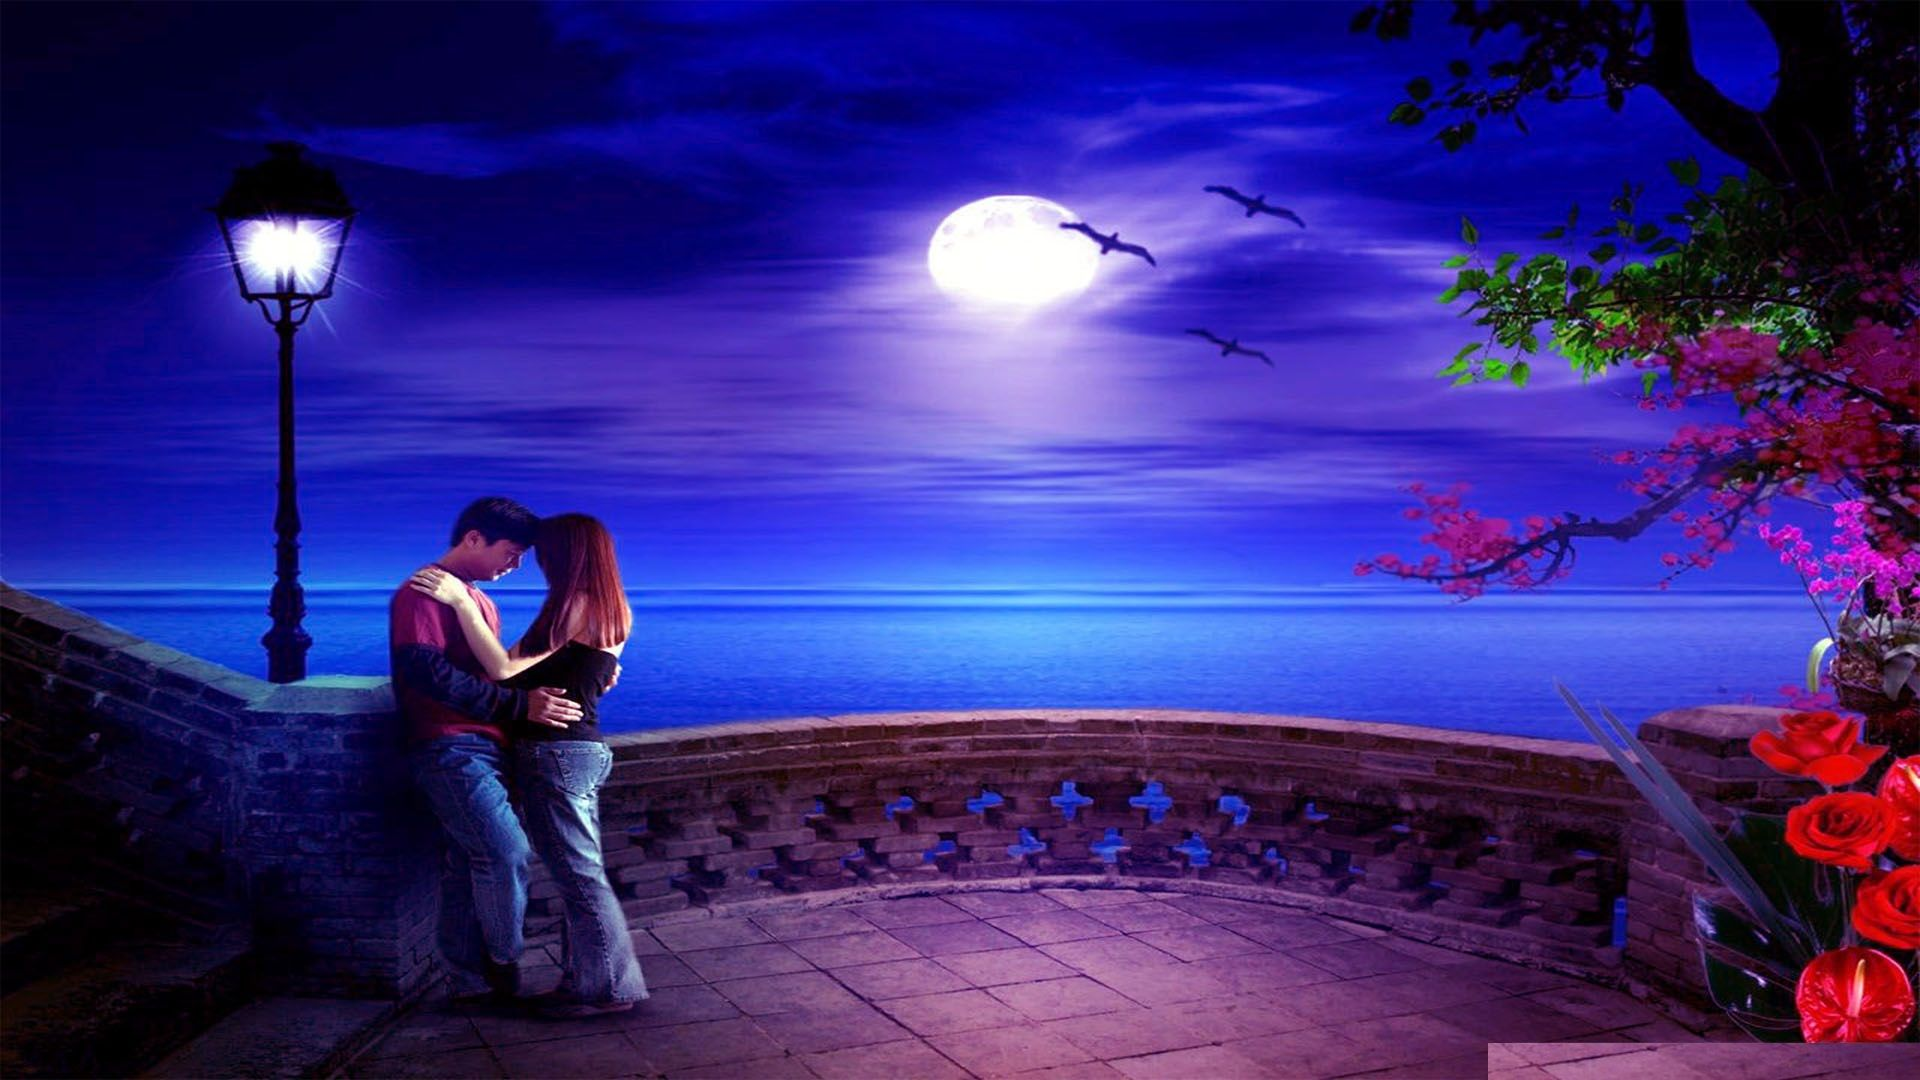 Romantic Love Wallpapers For Pc : Romantic Love HD Wallpapers : Find best latest Romantic ...